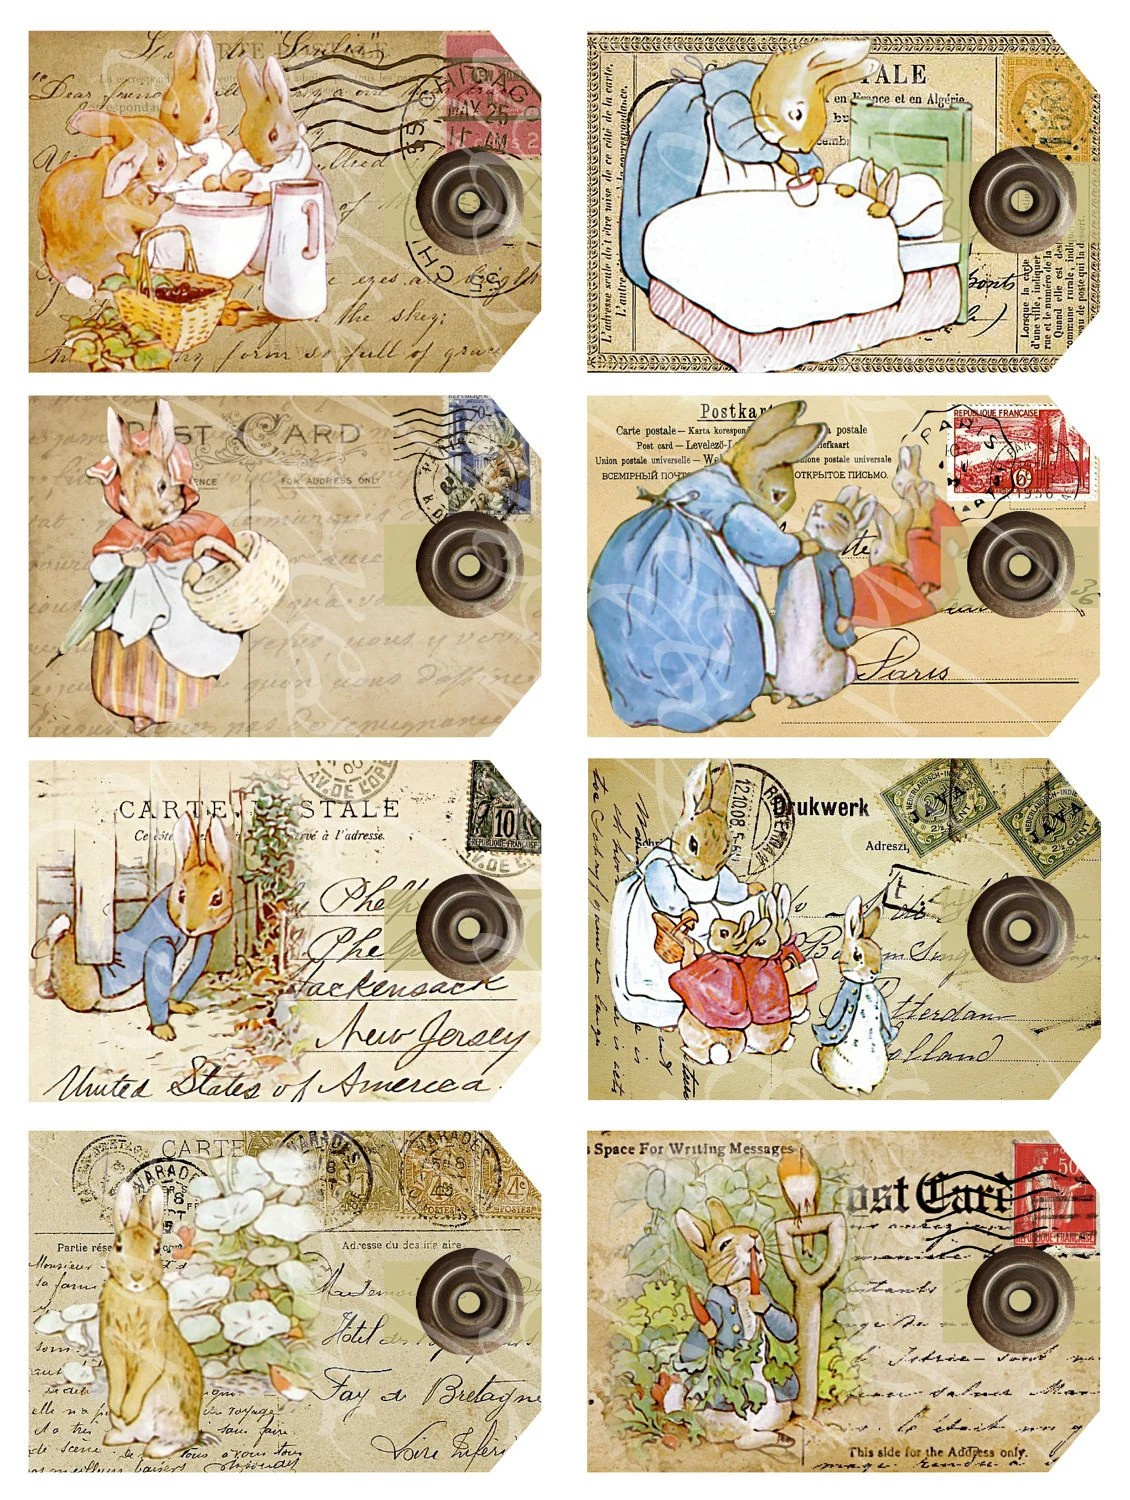 8 Postcard Tags From The Tale Of Peter Rabbit By Boxesbybrkr